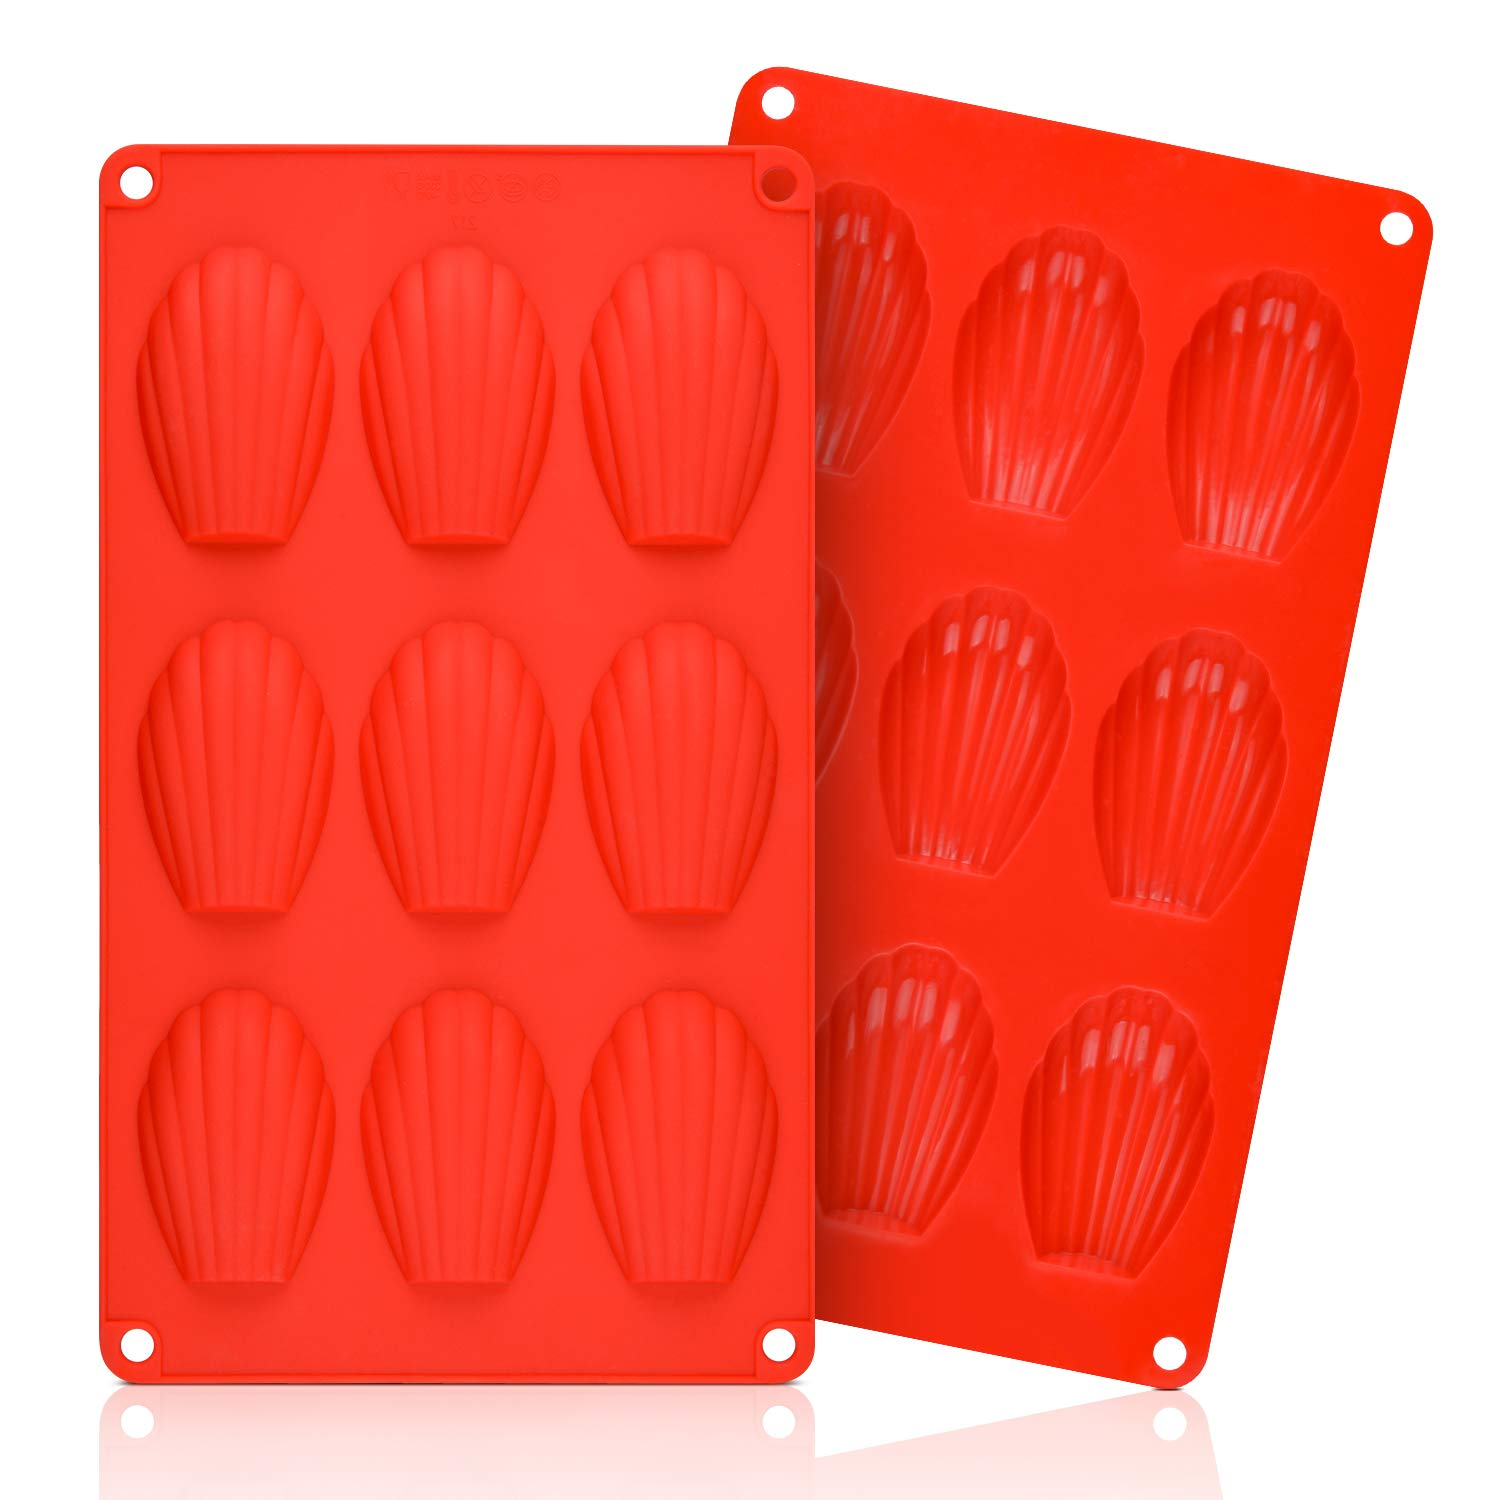 Silicone Madeleine Pans - 9 Cups Madeleine Mold for Small Cake, Chocolate, Cookies Pack of 2 by CAKETIME (Image #1)